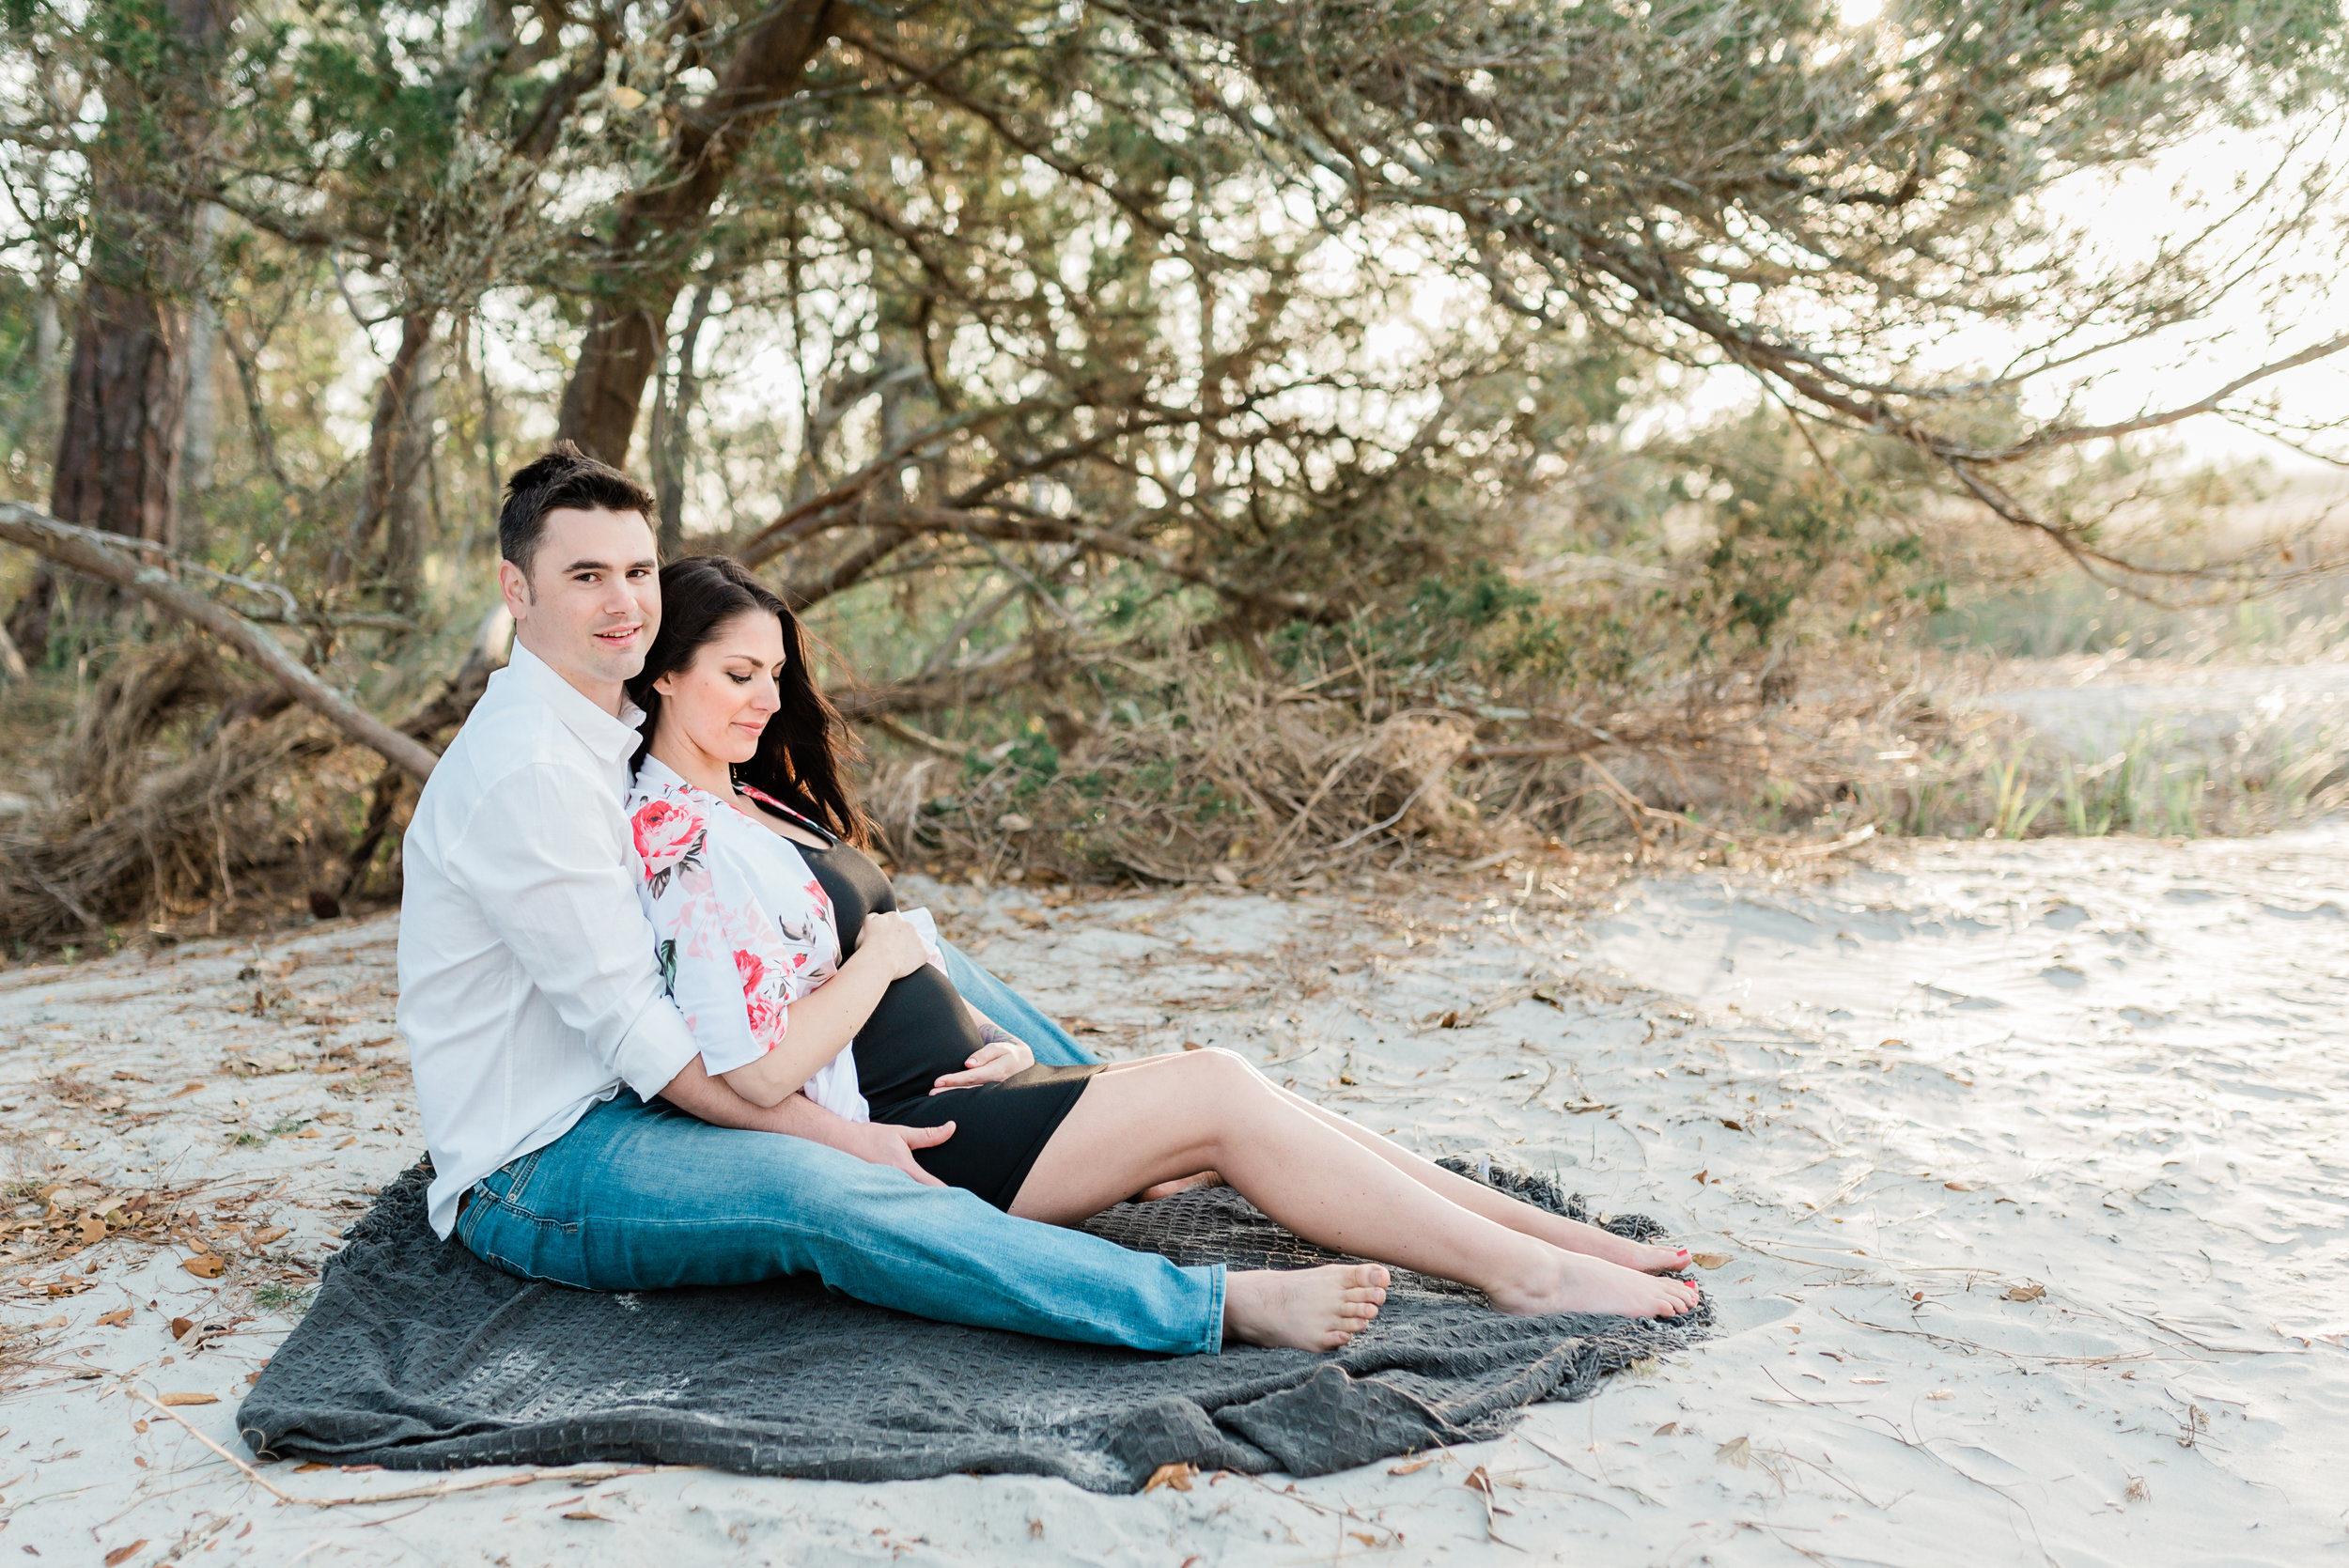 Folly-Beach-Maternity-Photographer-Following-Seas-Photography-1667 copy.jpg